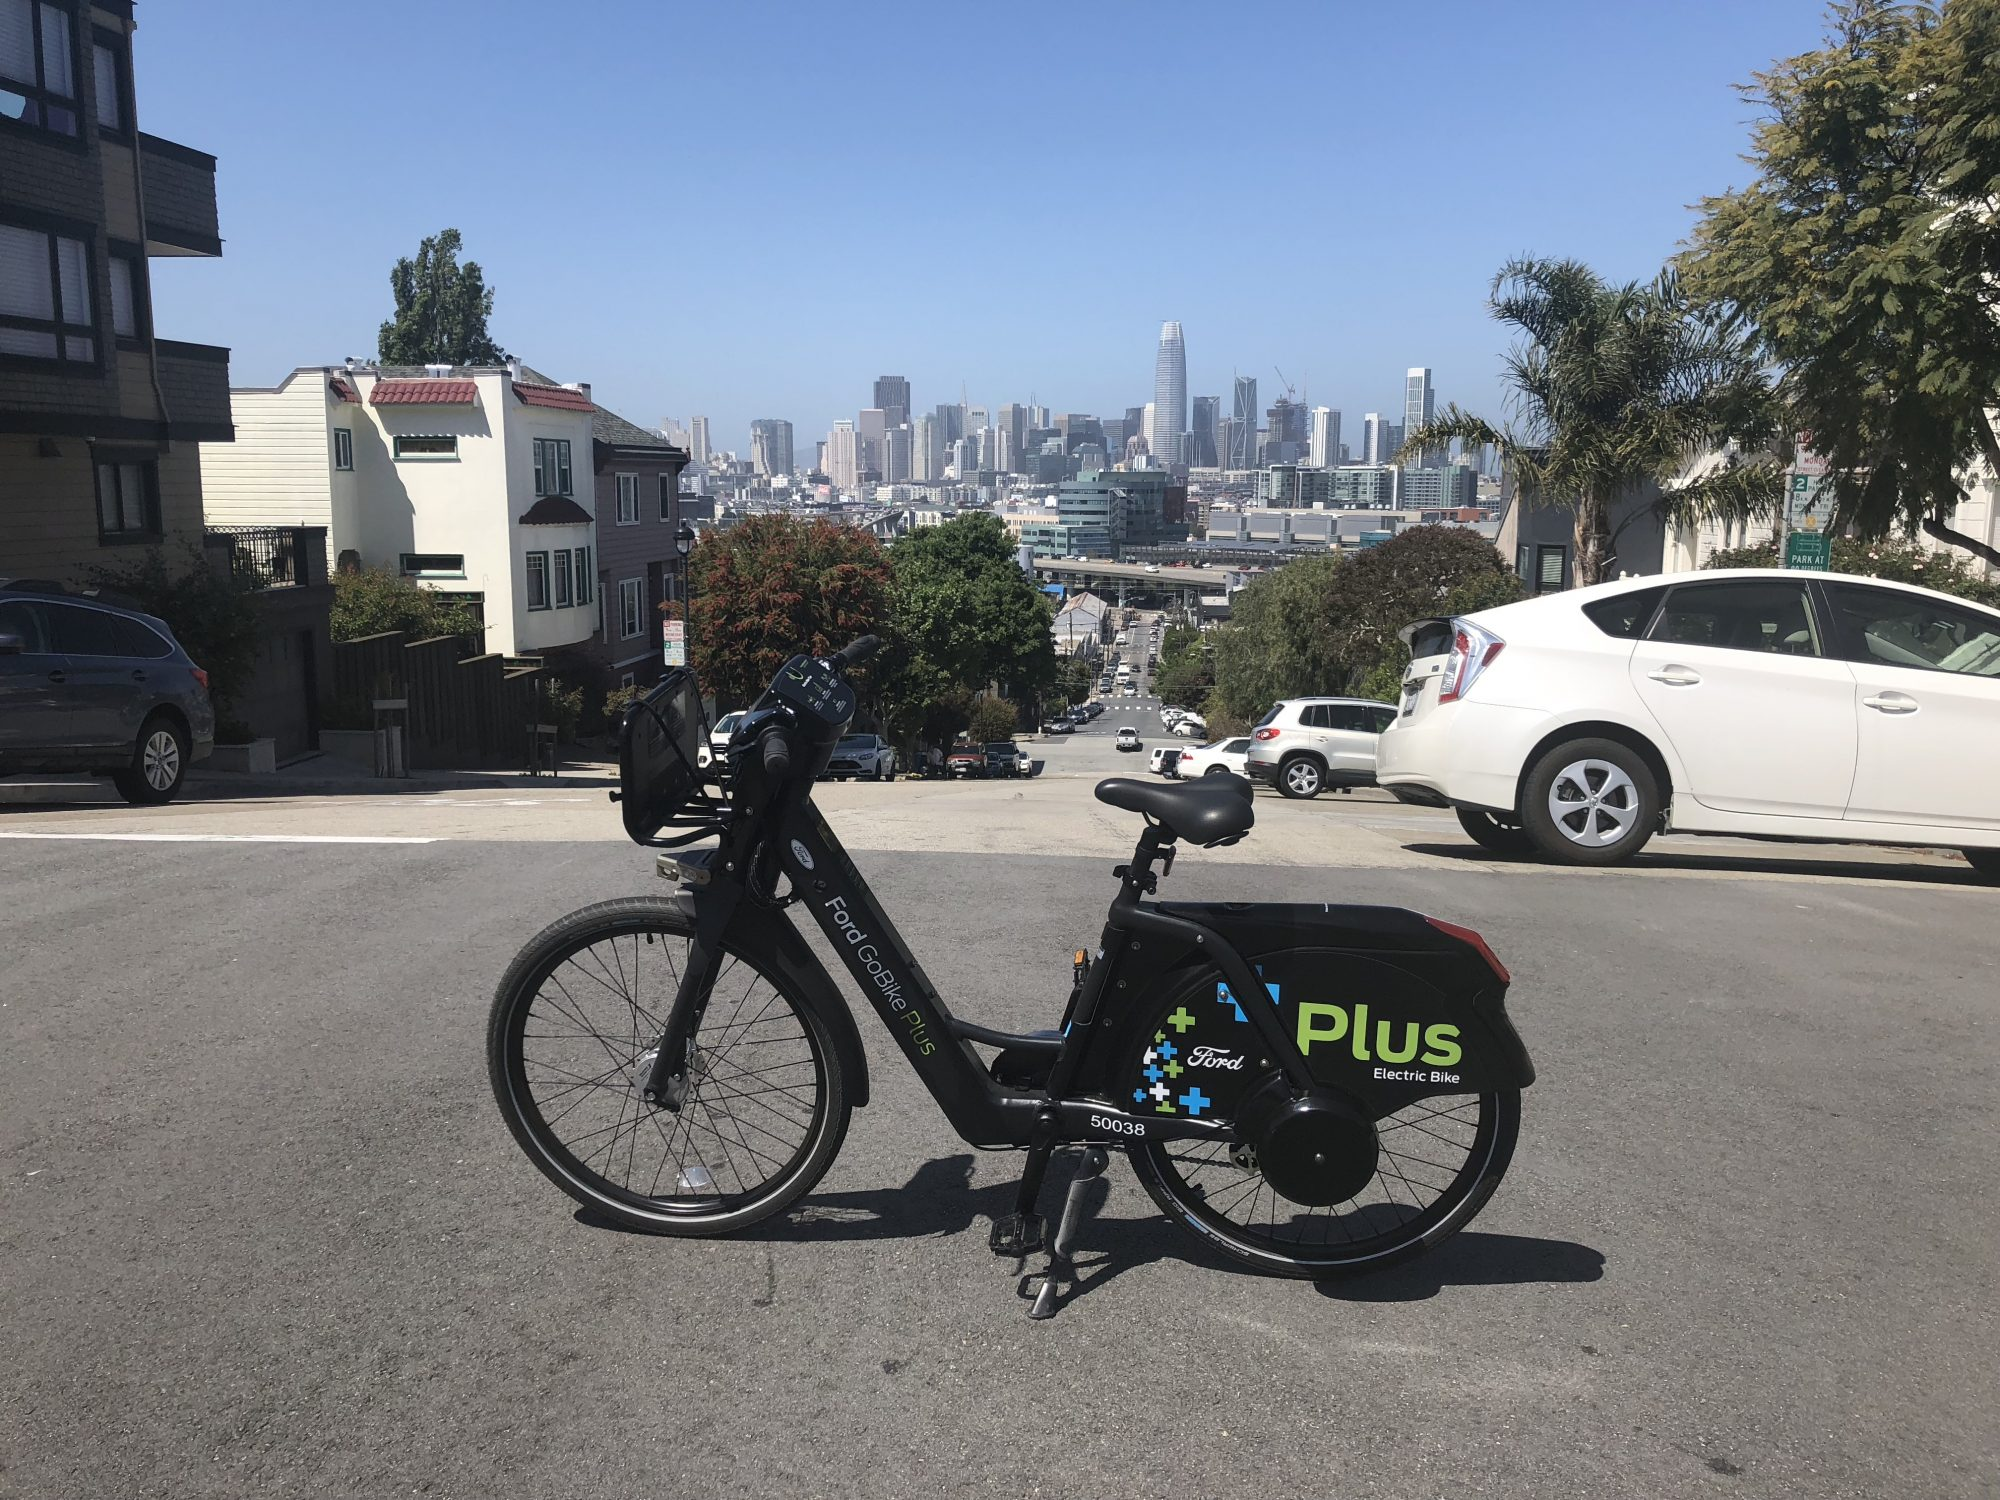 Lyft is reportedly close to buying the company behind Ford GoBike and Citi Bike